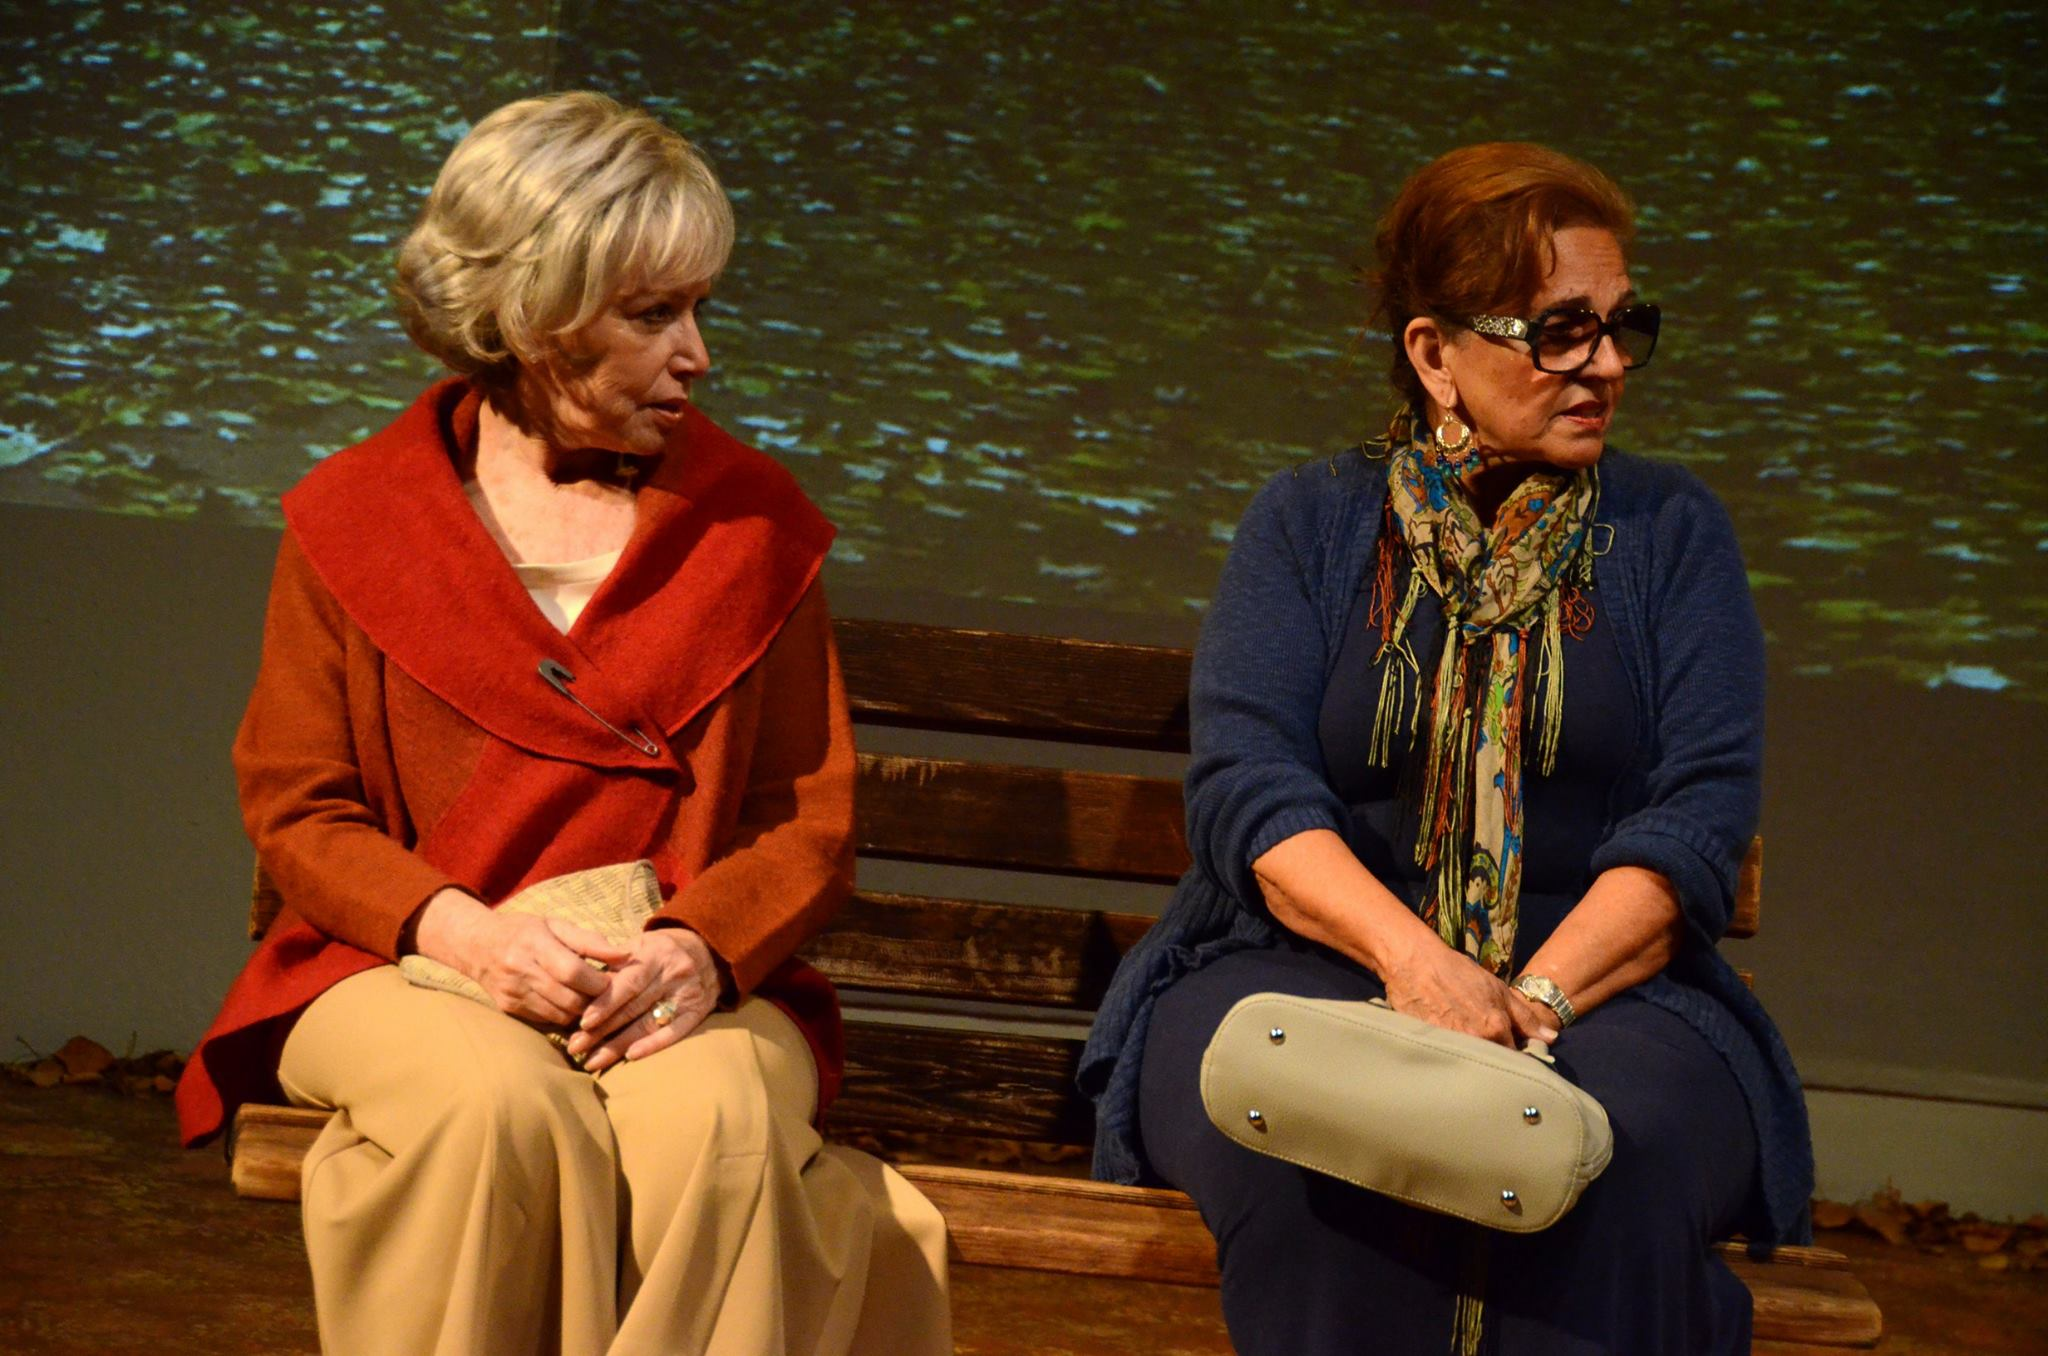 """Judy Lebeau and Delores D'Amore Goldsmith in """"The Last Romance"""" at Theatre Artists Studio, 2014. (Photo by Mark Gluckman)"""